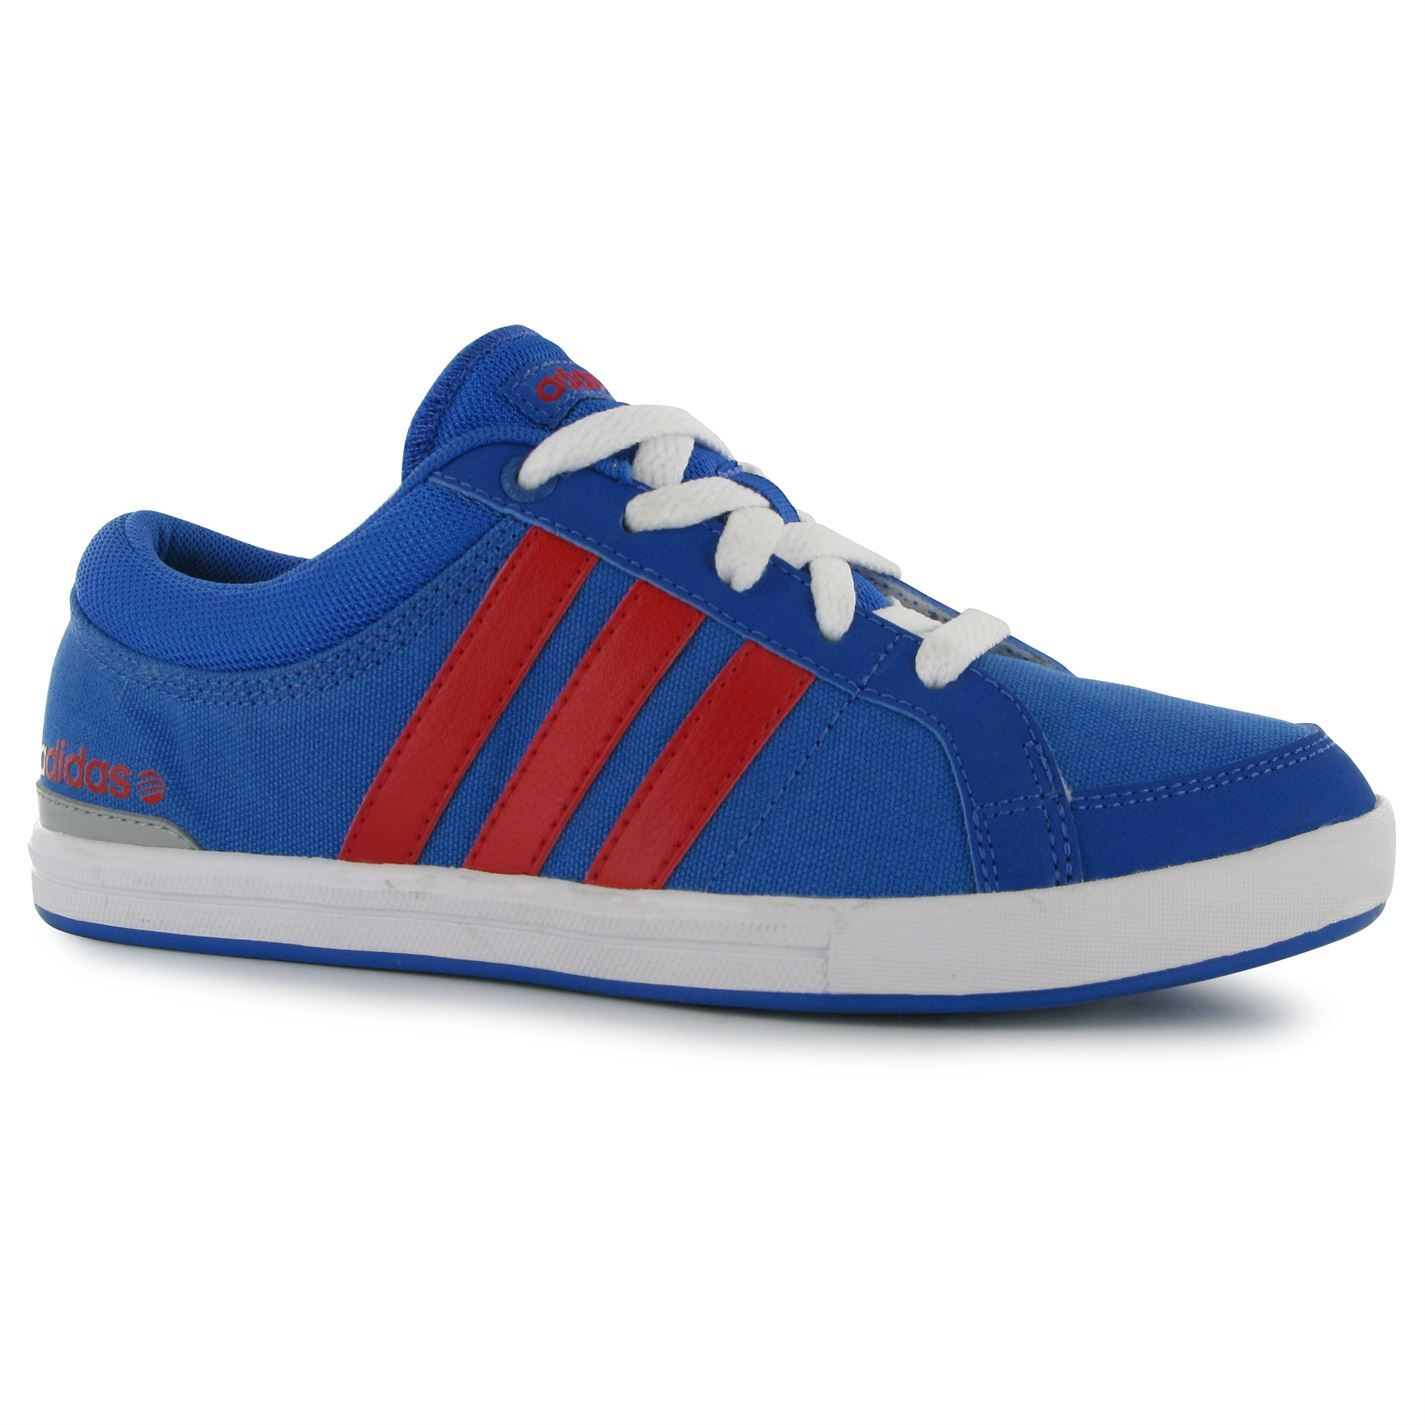 official photos f54b1 9ace5 ... discount code for wildnetcreatives images large adidas ireland adidas  neo skool 479d5 0b0ac